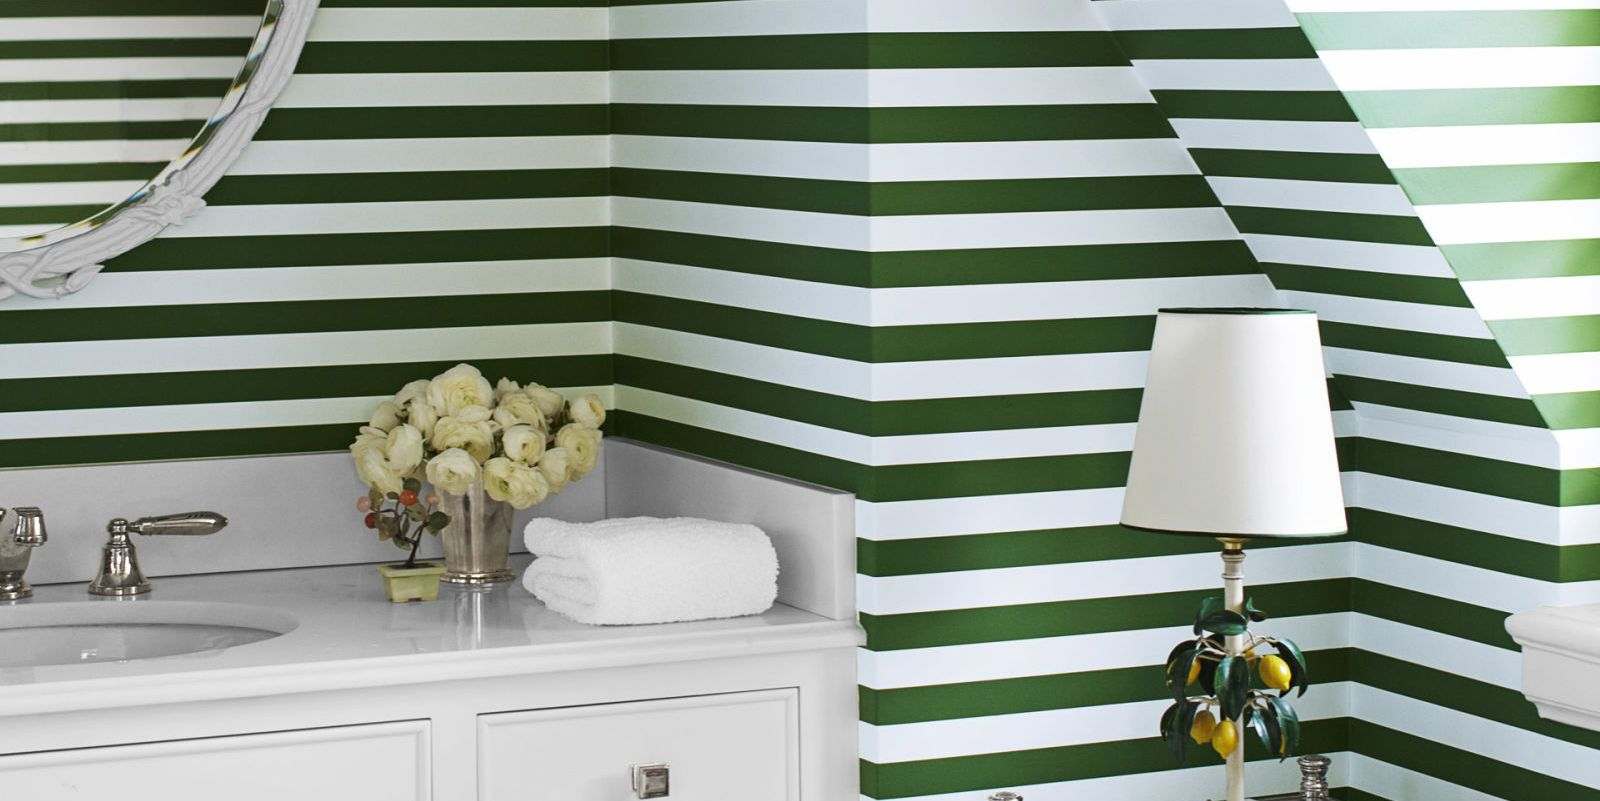 18 Colorful Bathrooms That'll Make You So Happy